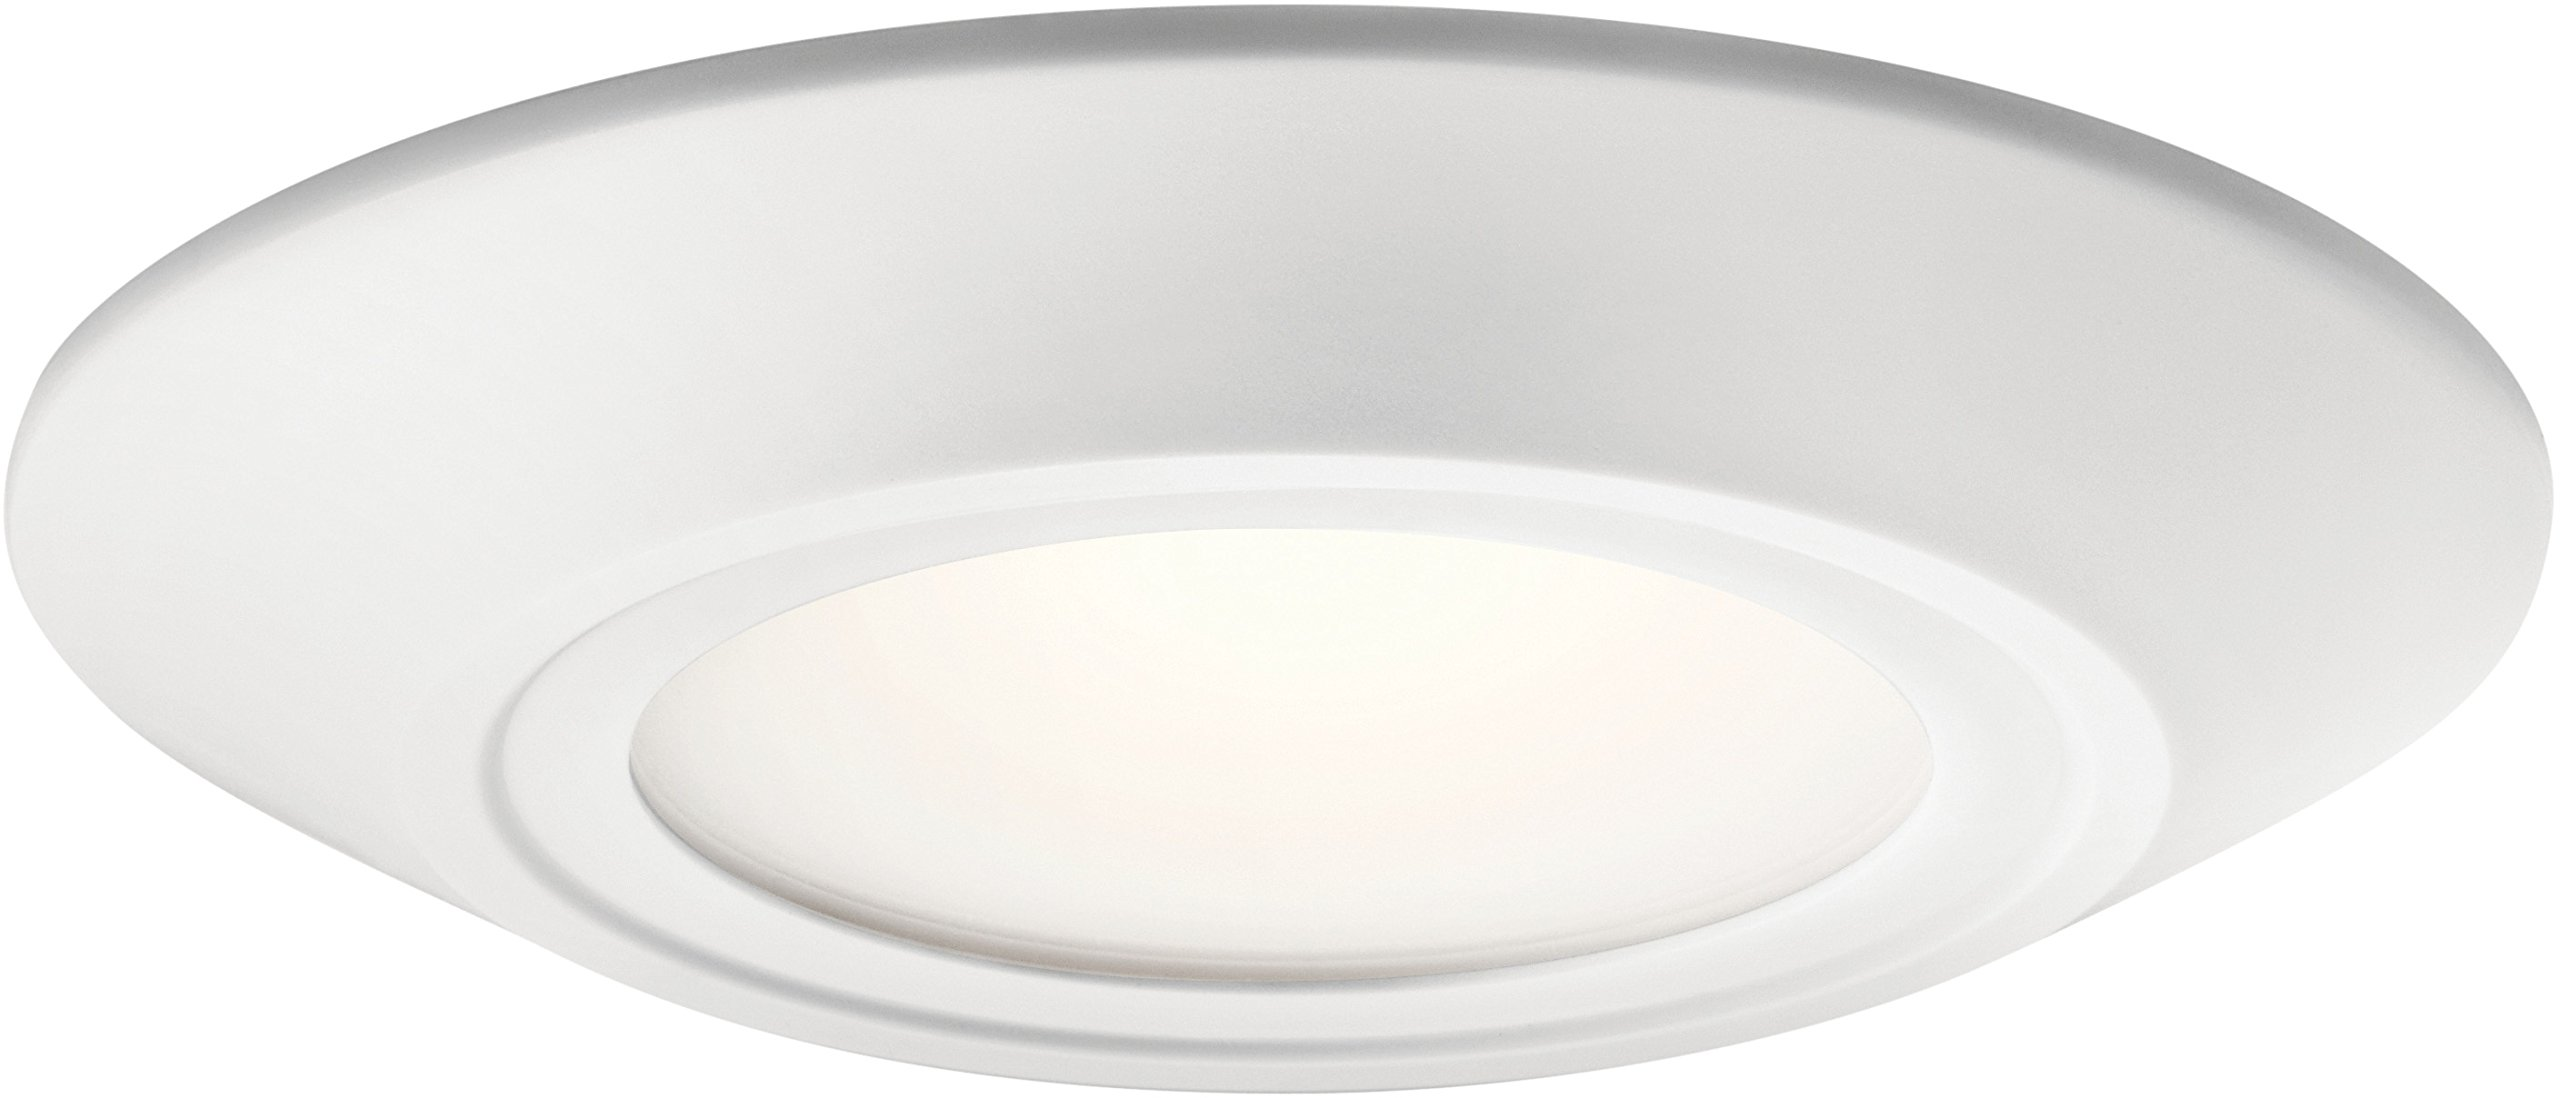 Kichler Lighting 43870WHLED27 LED Downlight from The Horizon II Collection